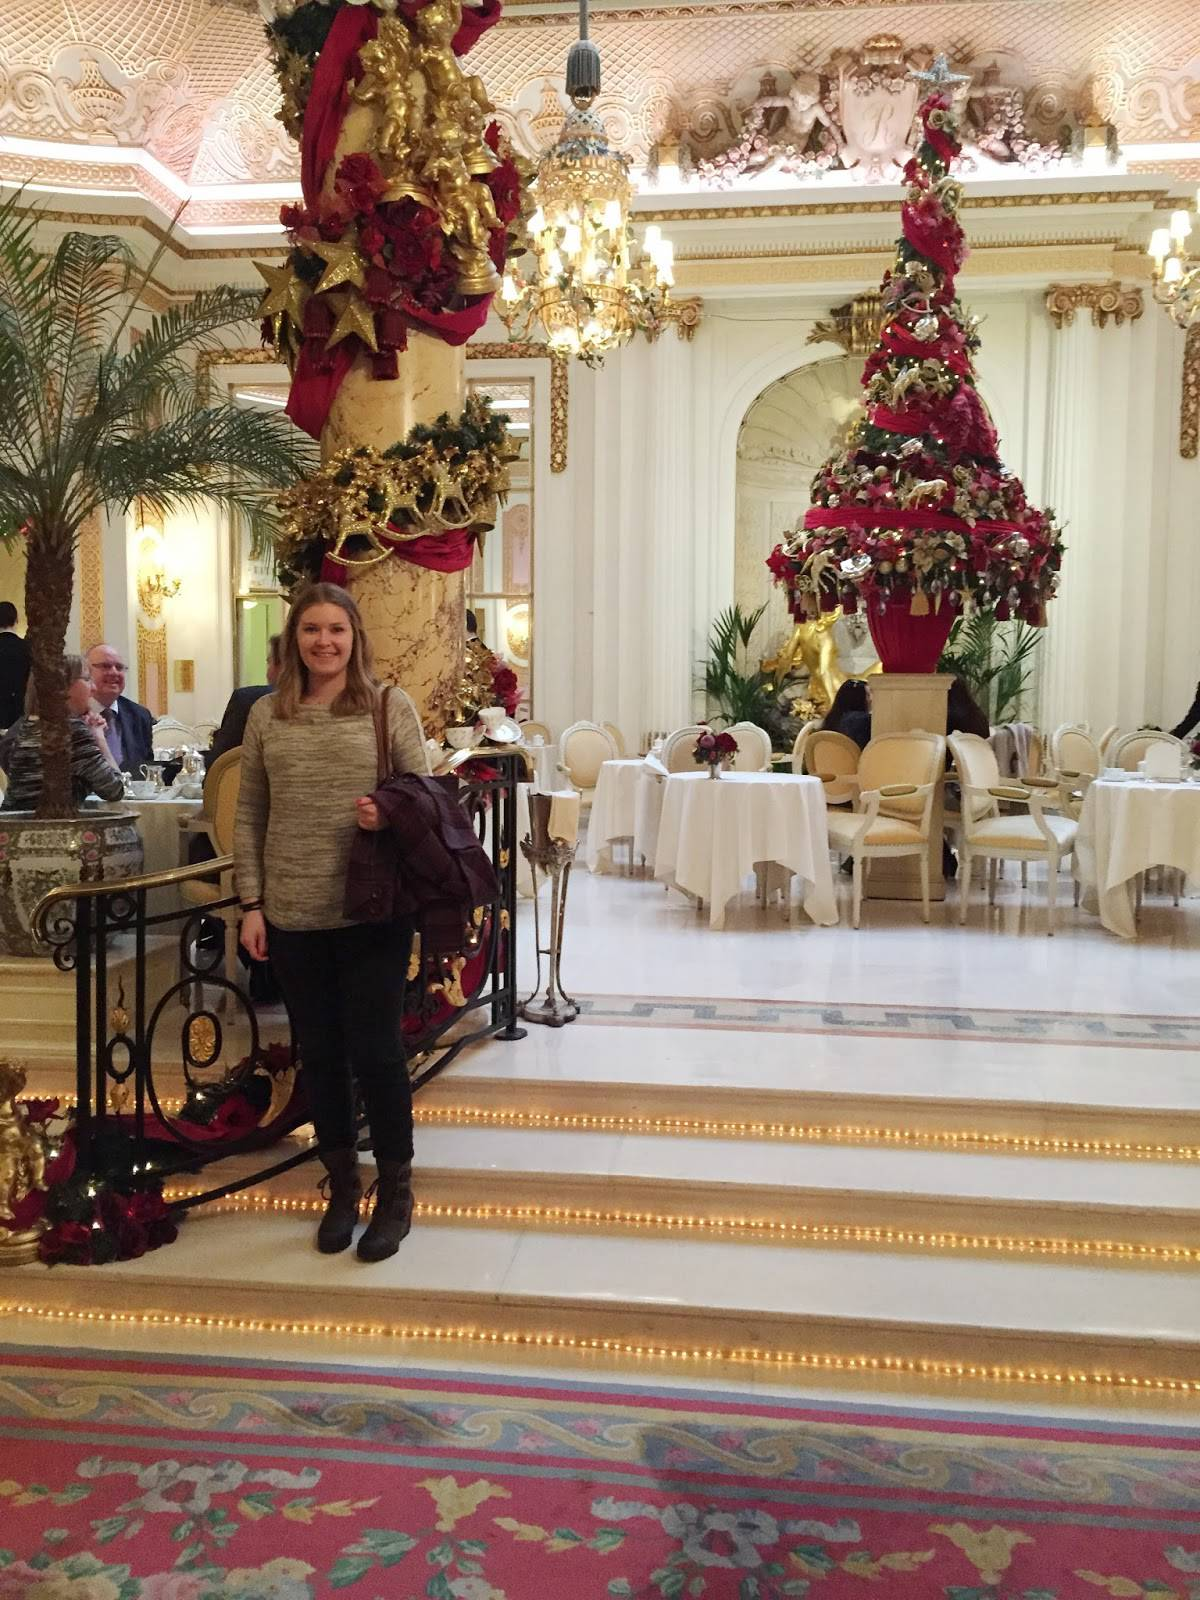 Afternoon tea at the ritz voucher codes